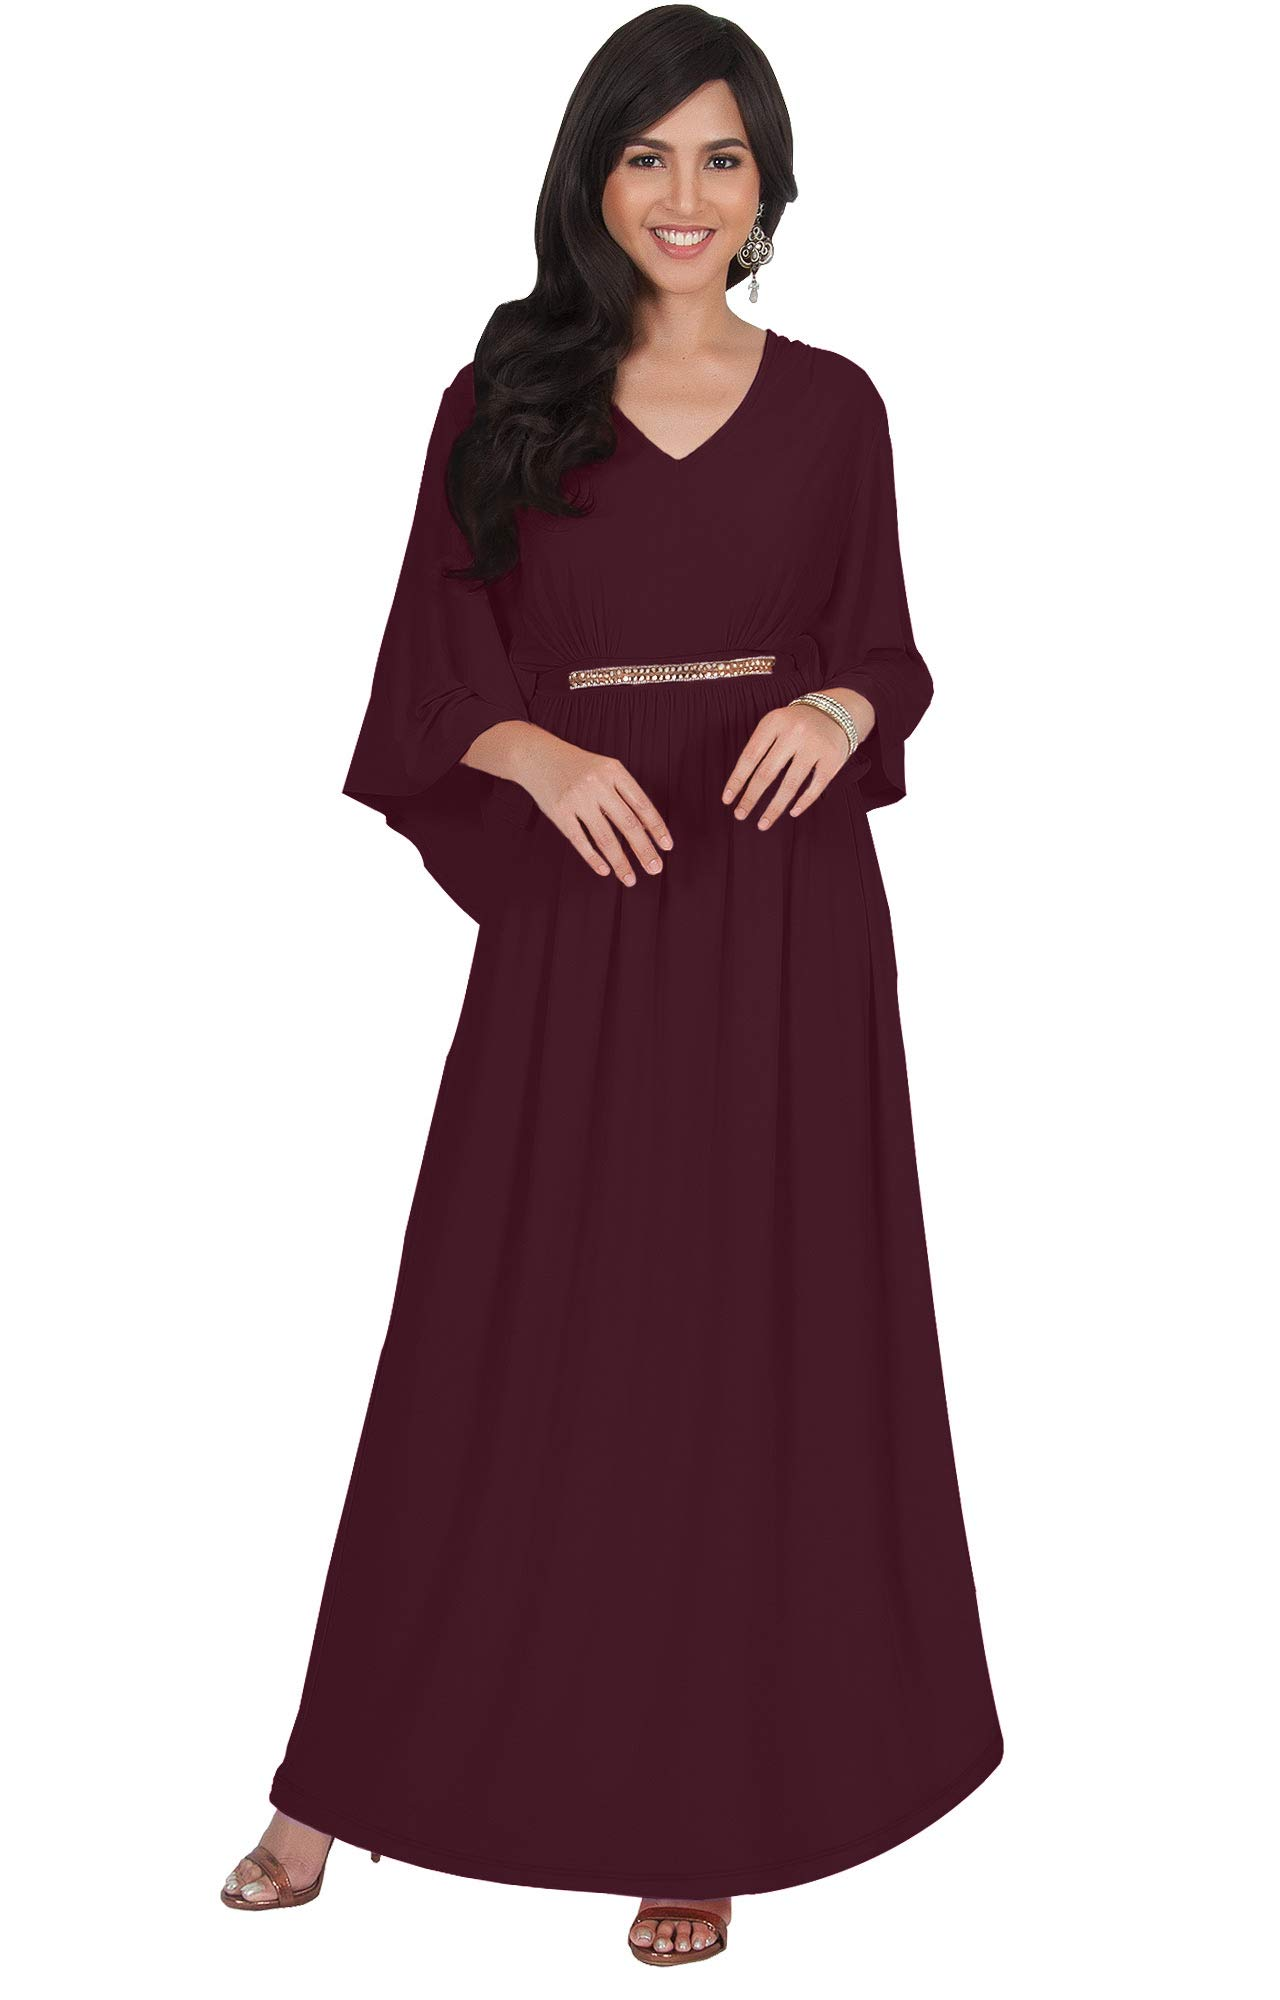 3be1a29082a ... Batwing Dolman Sleeve Evening Cocktail Flowy Empire Waist Bridesmaid  Formal Kaftan Wedding Guest Gown Gowns Maxi Dress Dresses